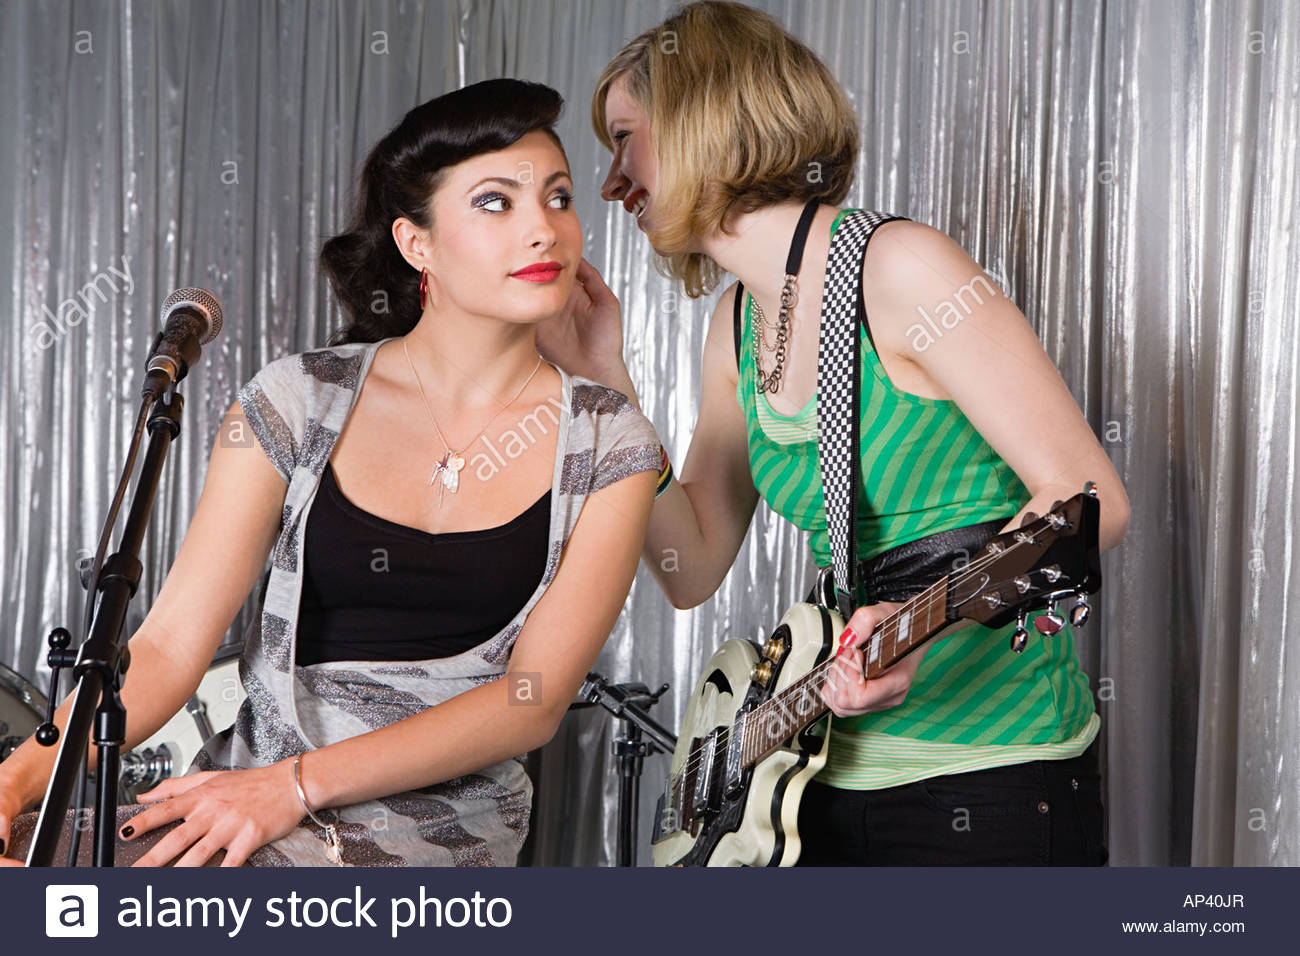 Two young women whispering - Stock Image